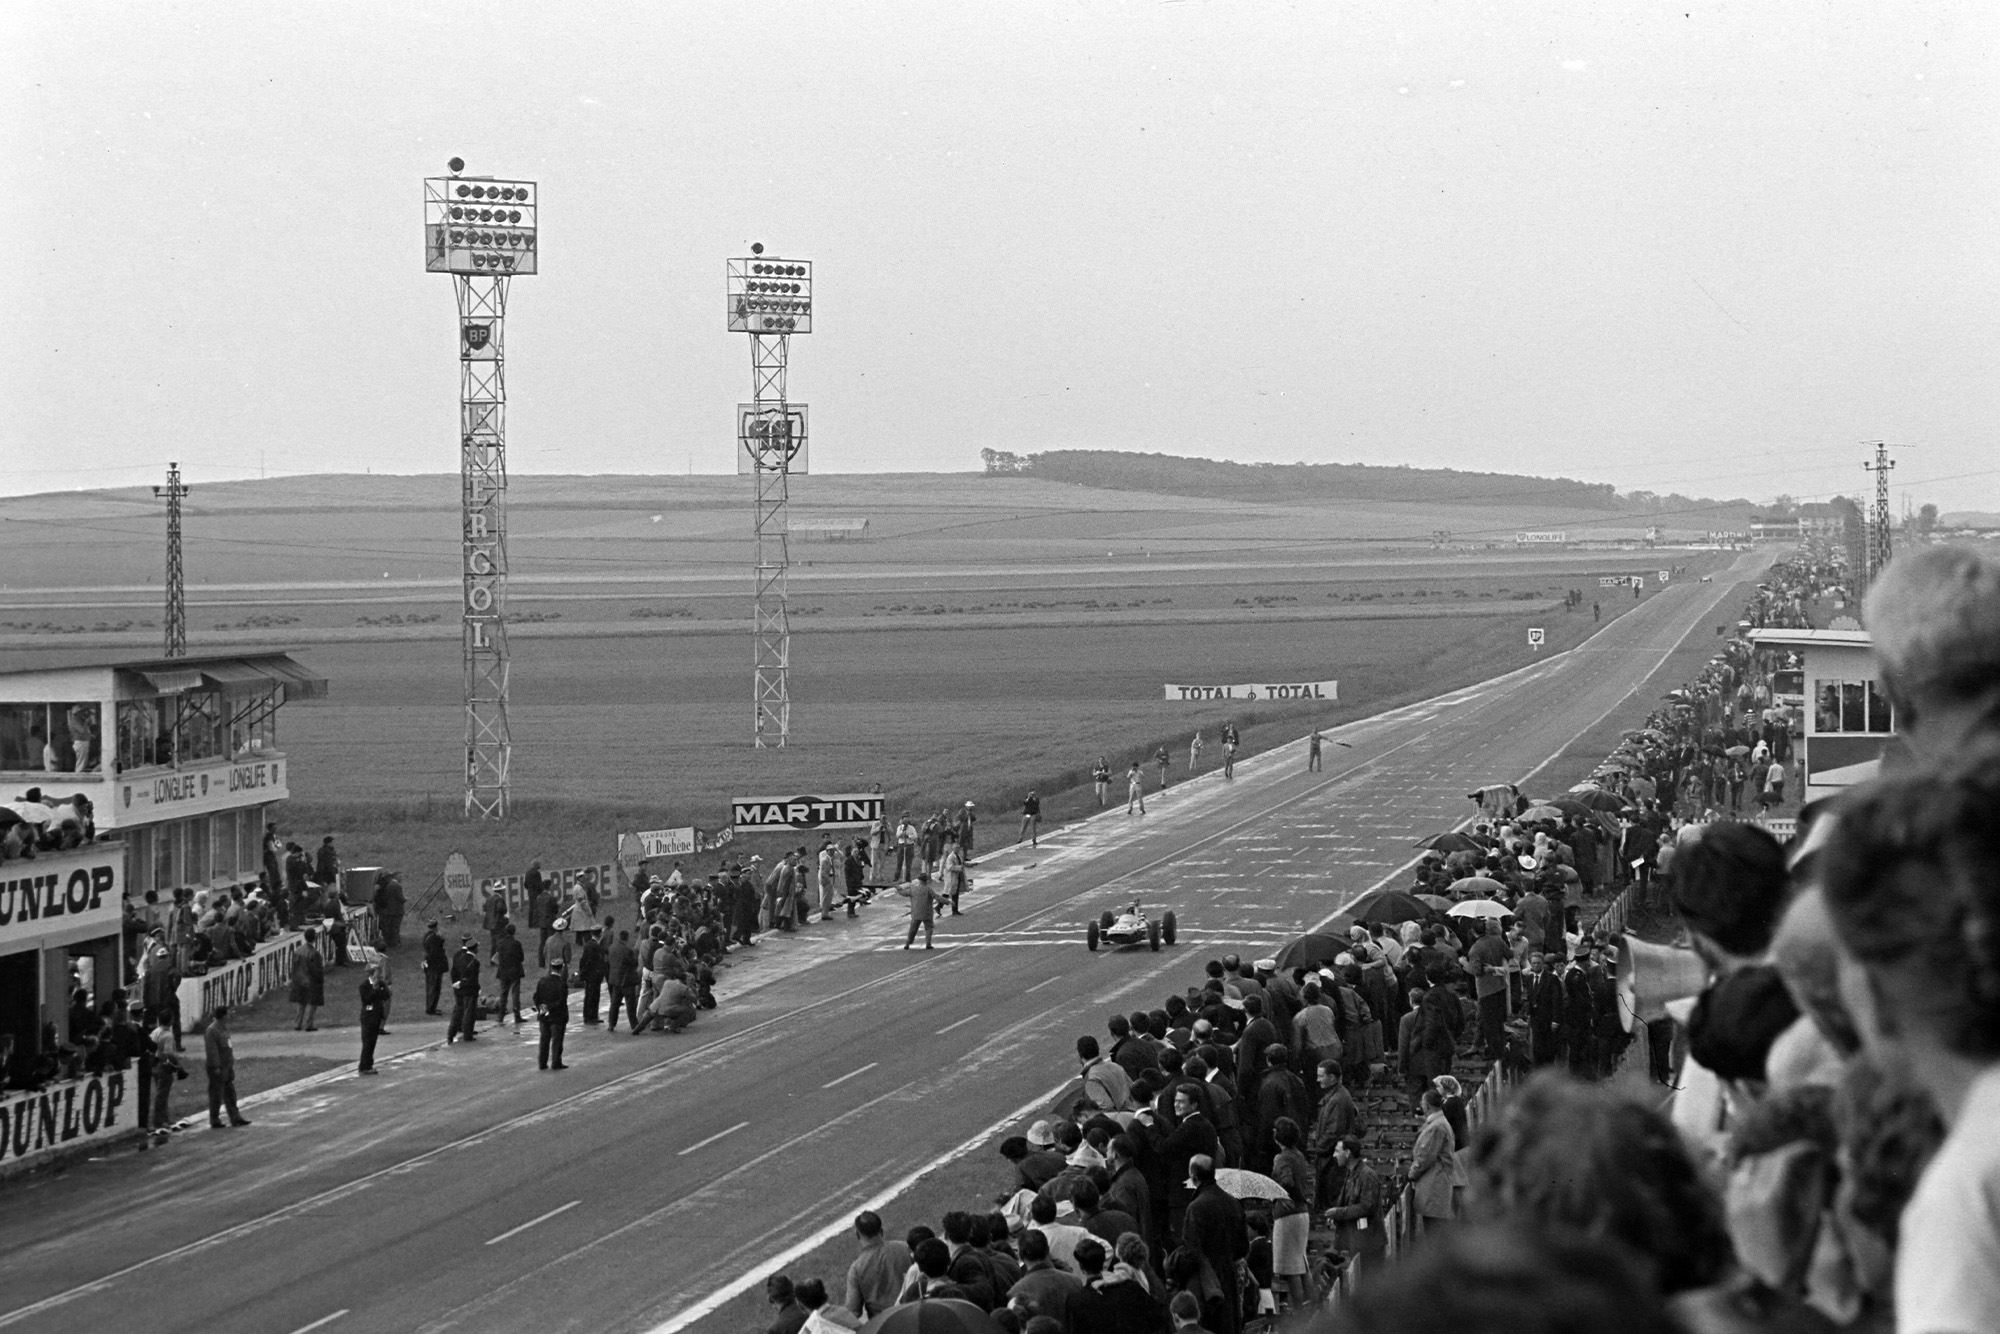 Jim Clark, Lotus 25 Climax, crosses the finish line and takes the chequered flag.